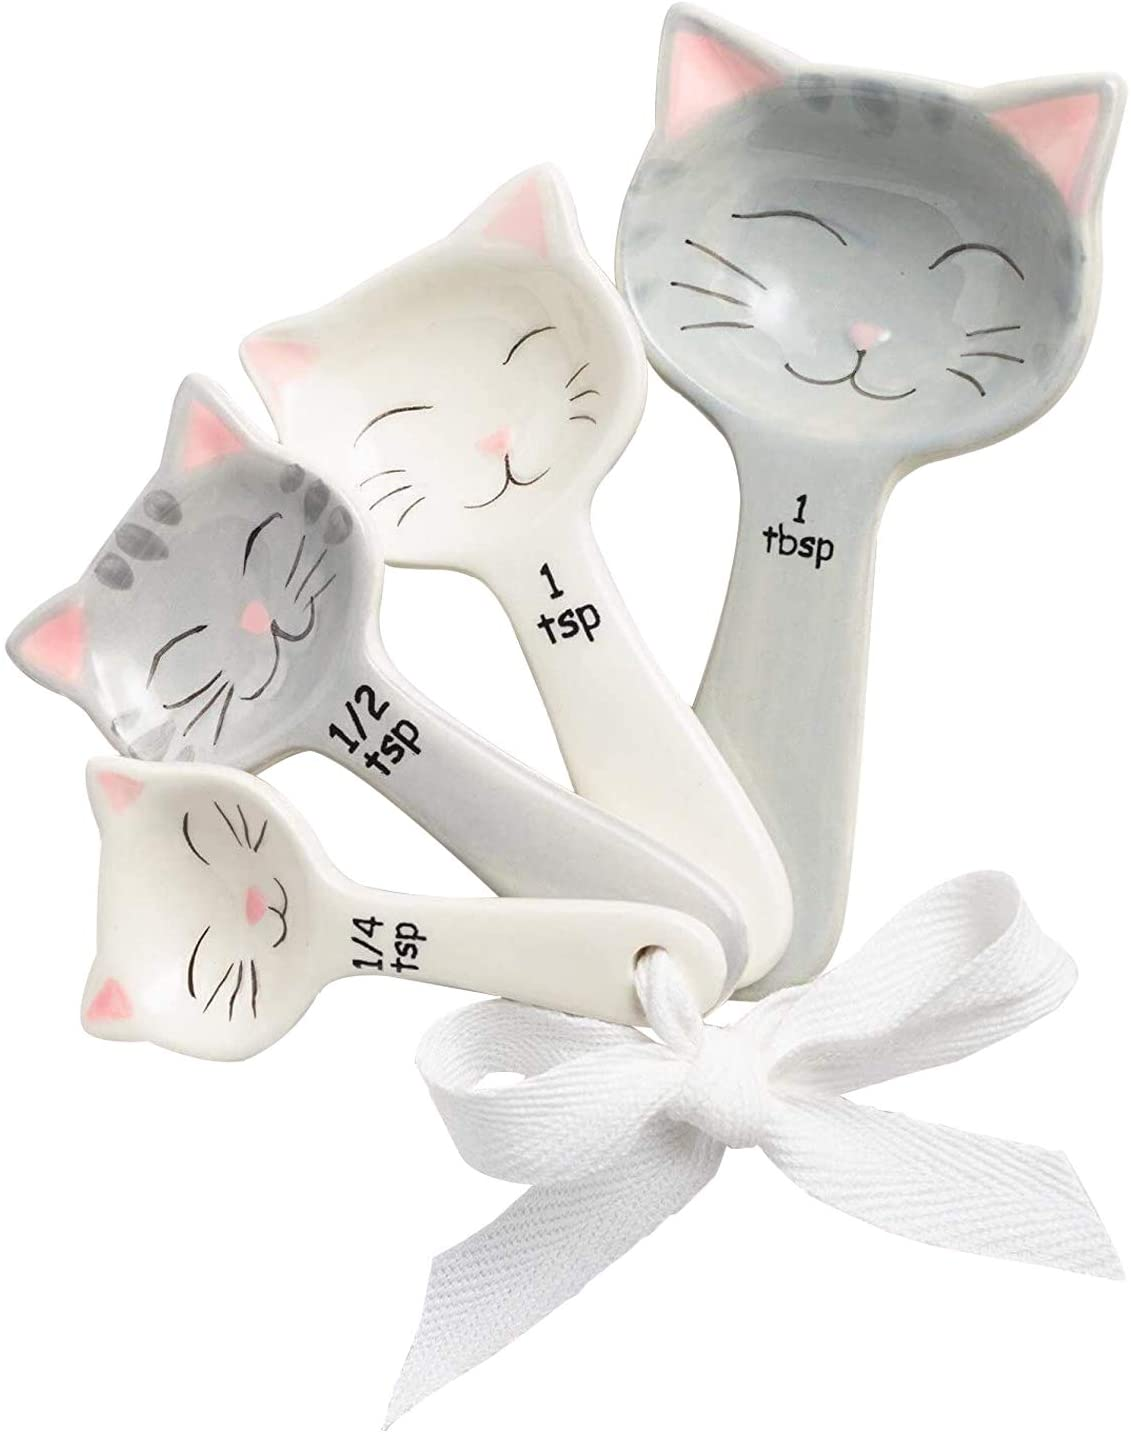 Cat shaped ceramic measuring spoons.